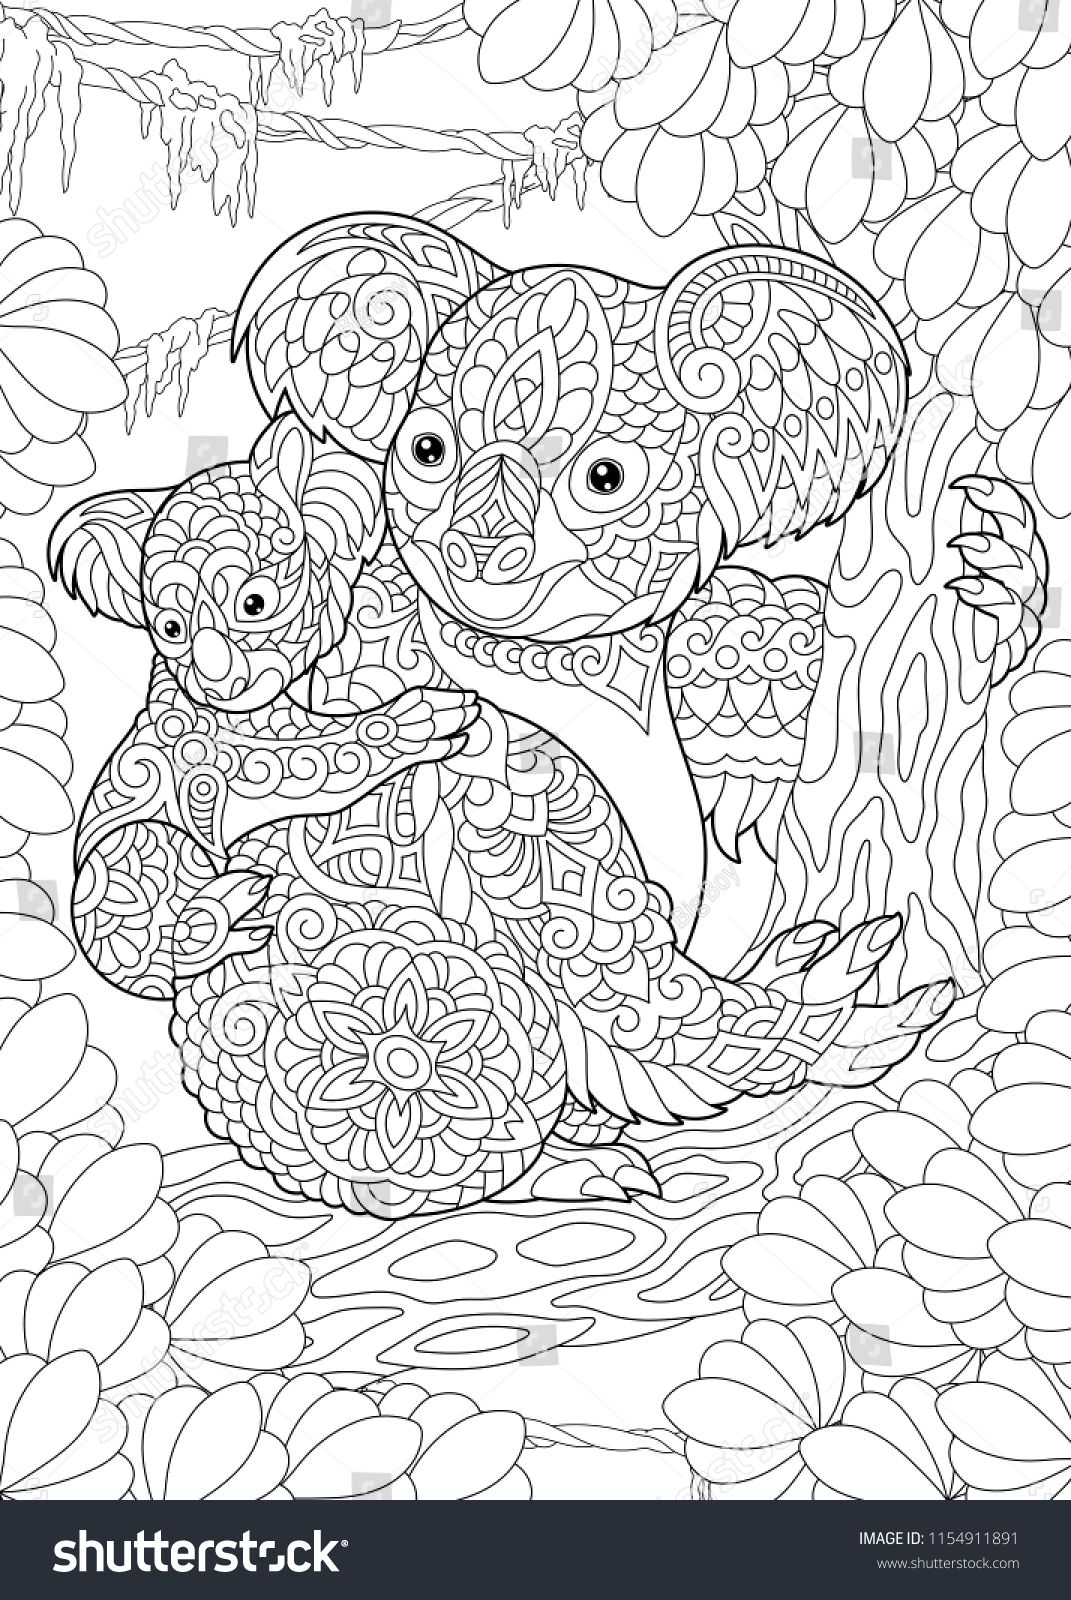 Coloring Page Coloring Book Colouring Picture With Koala Bears Antistress Freehand Sketch Drawing Animal Coloring Books Animal Coloring Pages Coloring Books